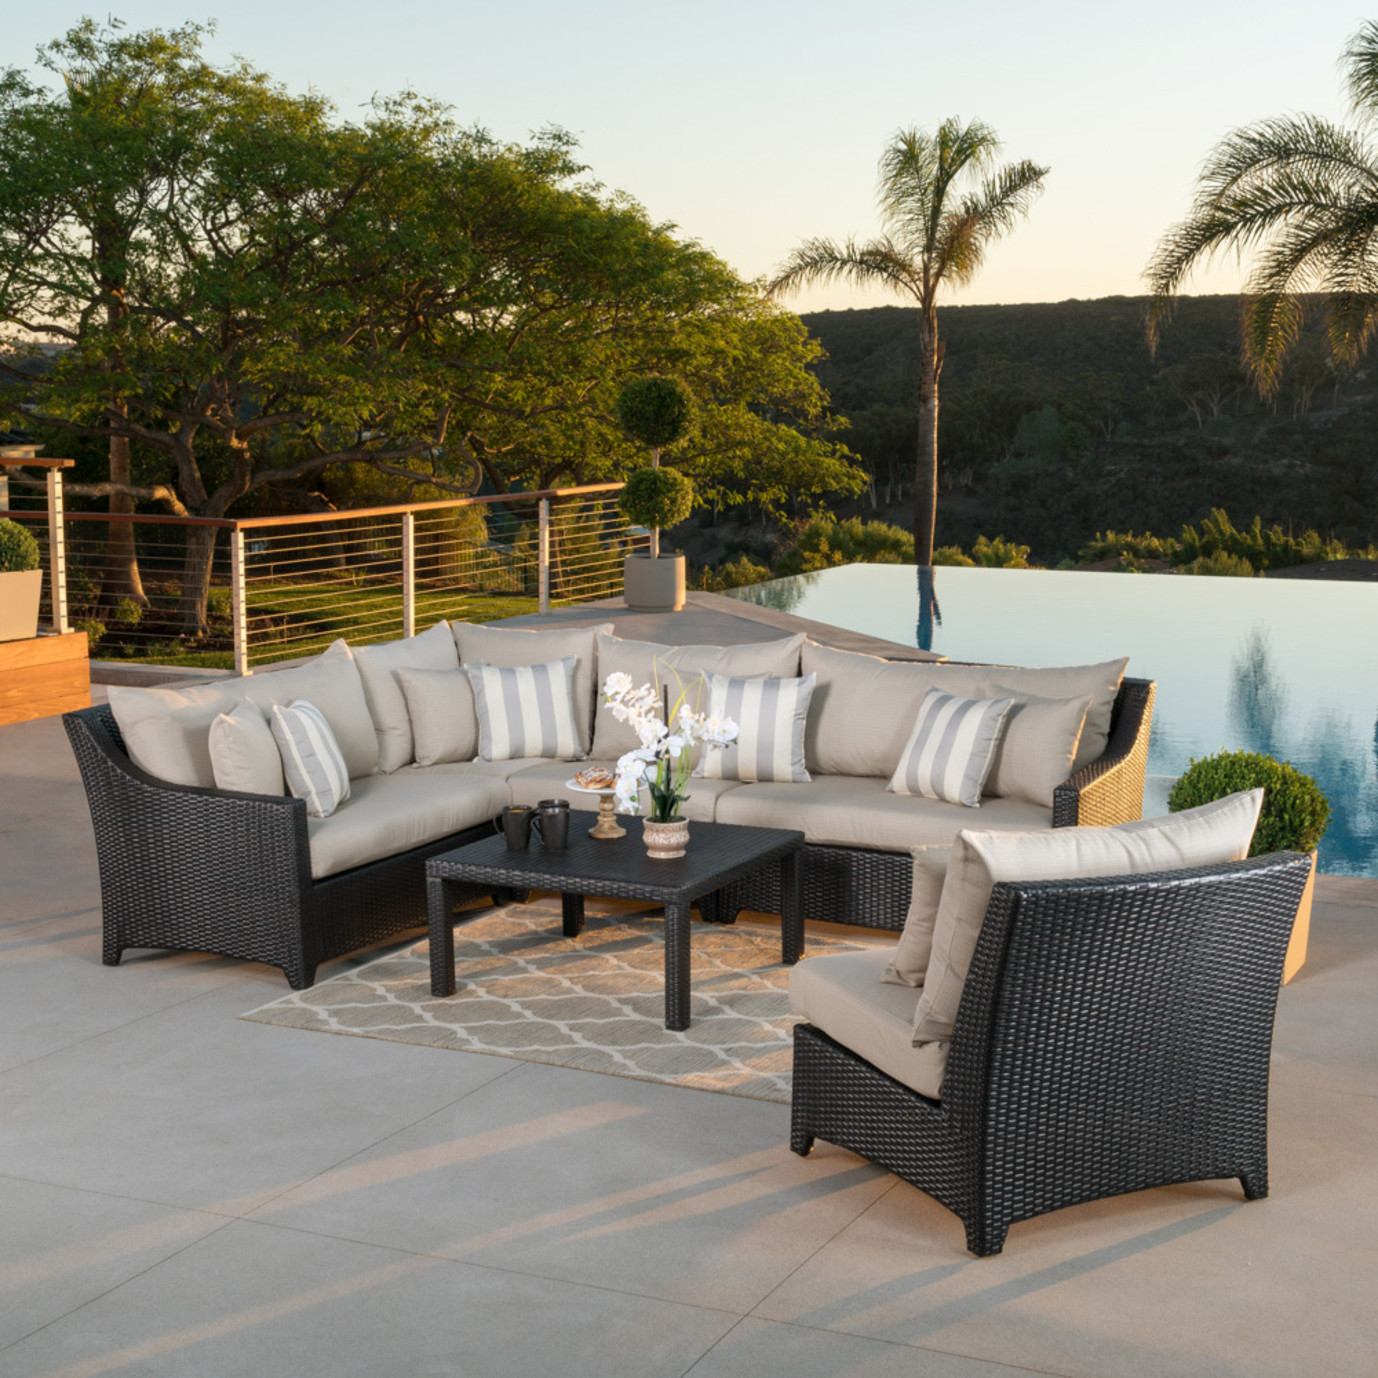 Deco™ 6pc Sectional and Table - Slate Gray